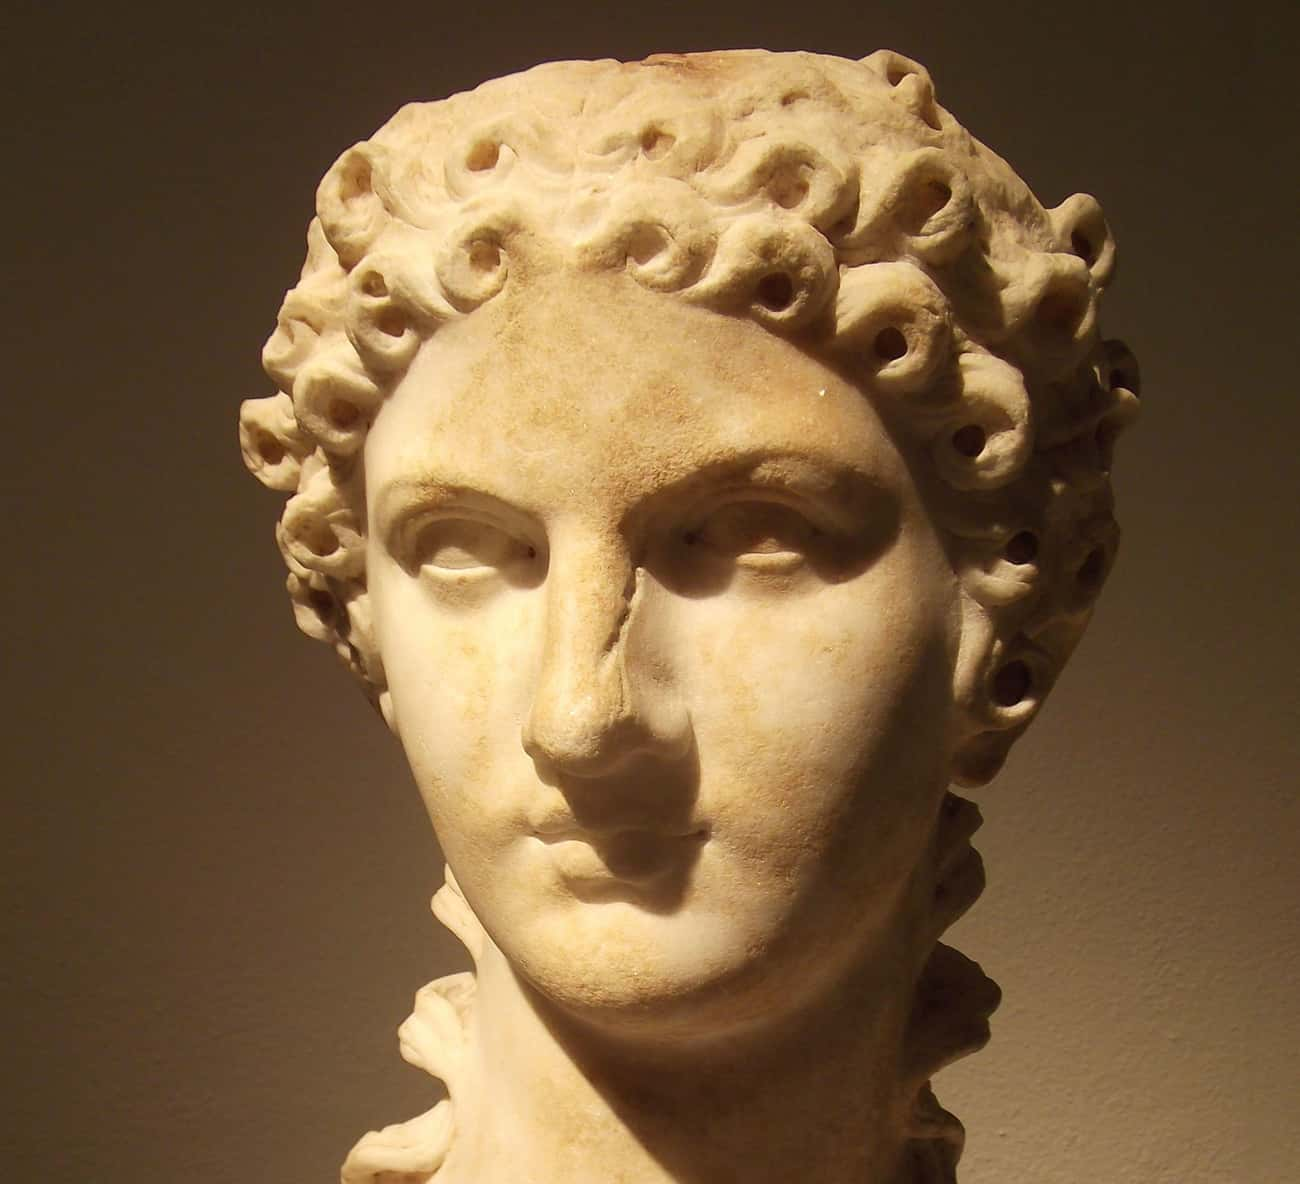 Nero Got Nasty With His Mom is listed (or ranked) 4 on the list The Craziest Ancient Rome Sex Scandals